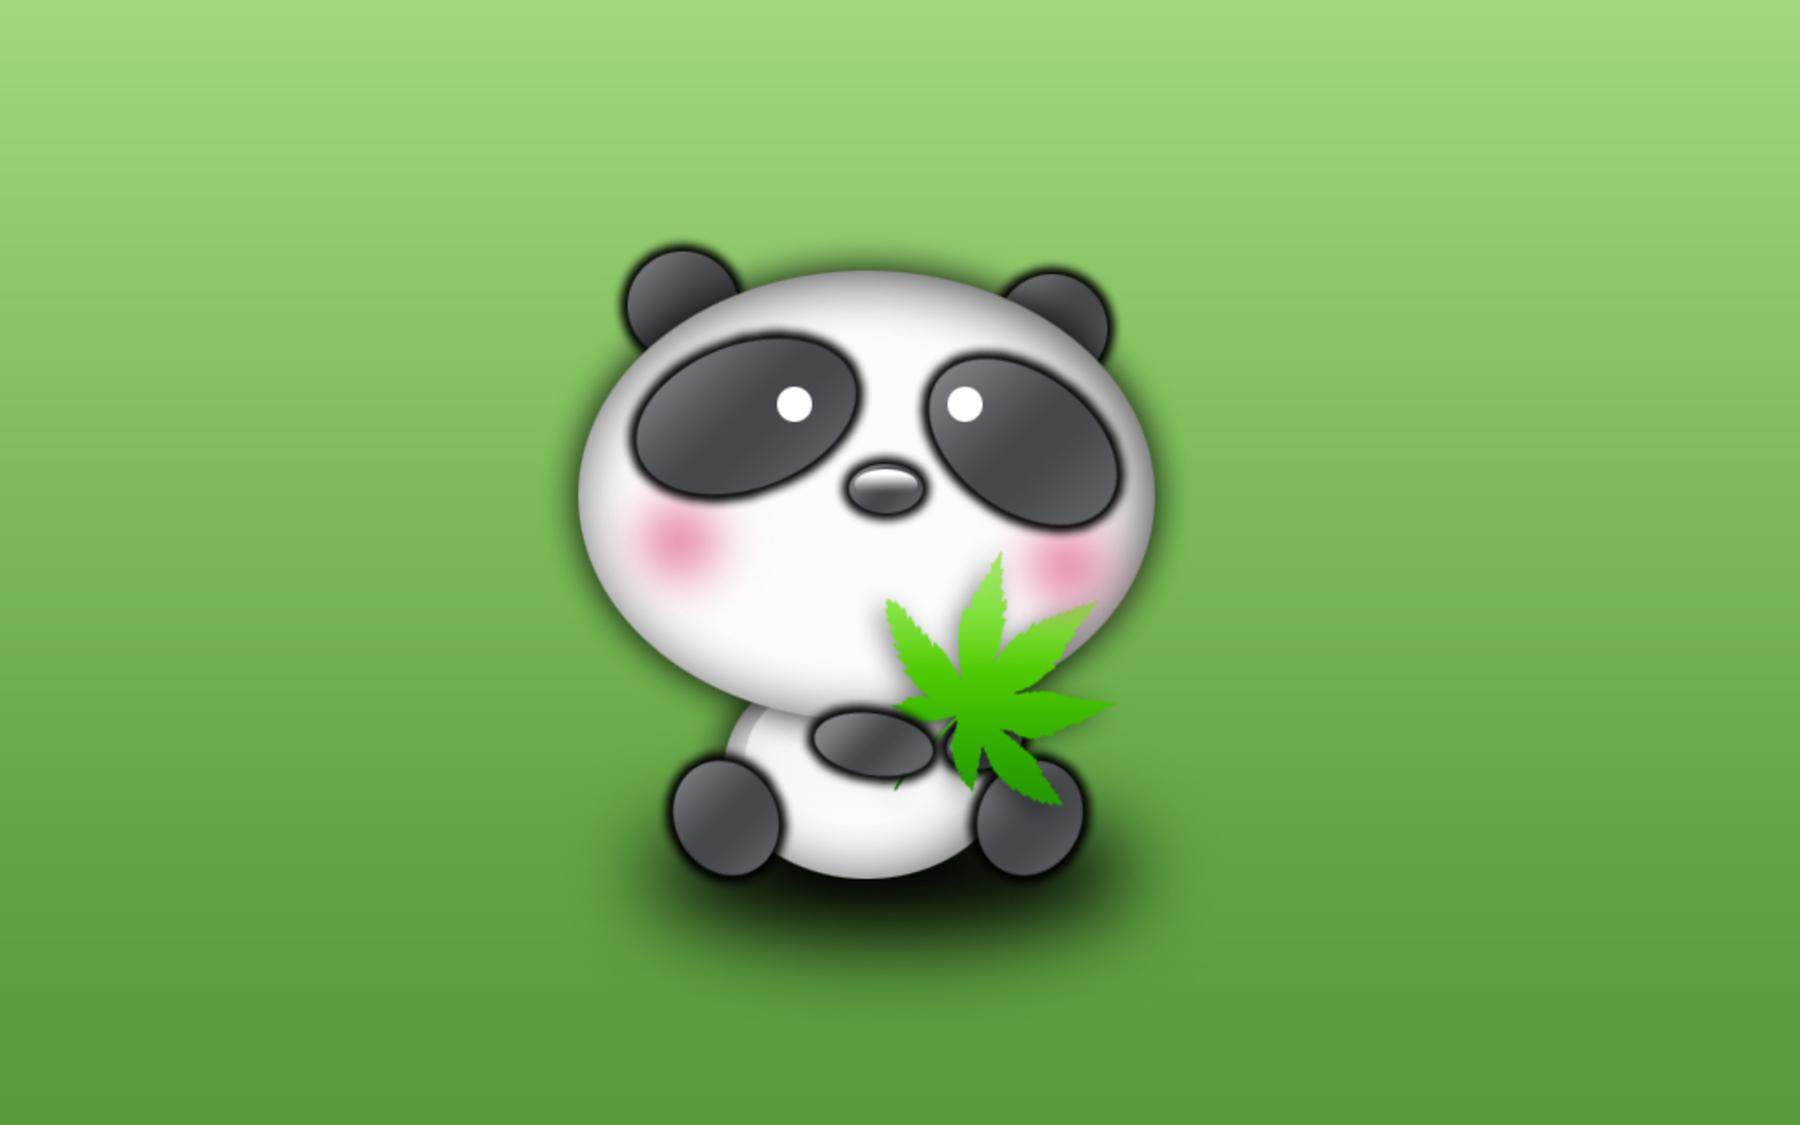 Cute Panda Wallpaper wallpaper Cute Panda Wallpaper hd wallpaper 1800x1125